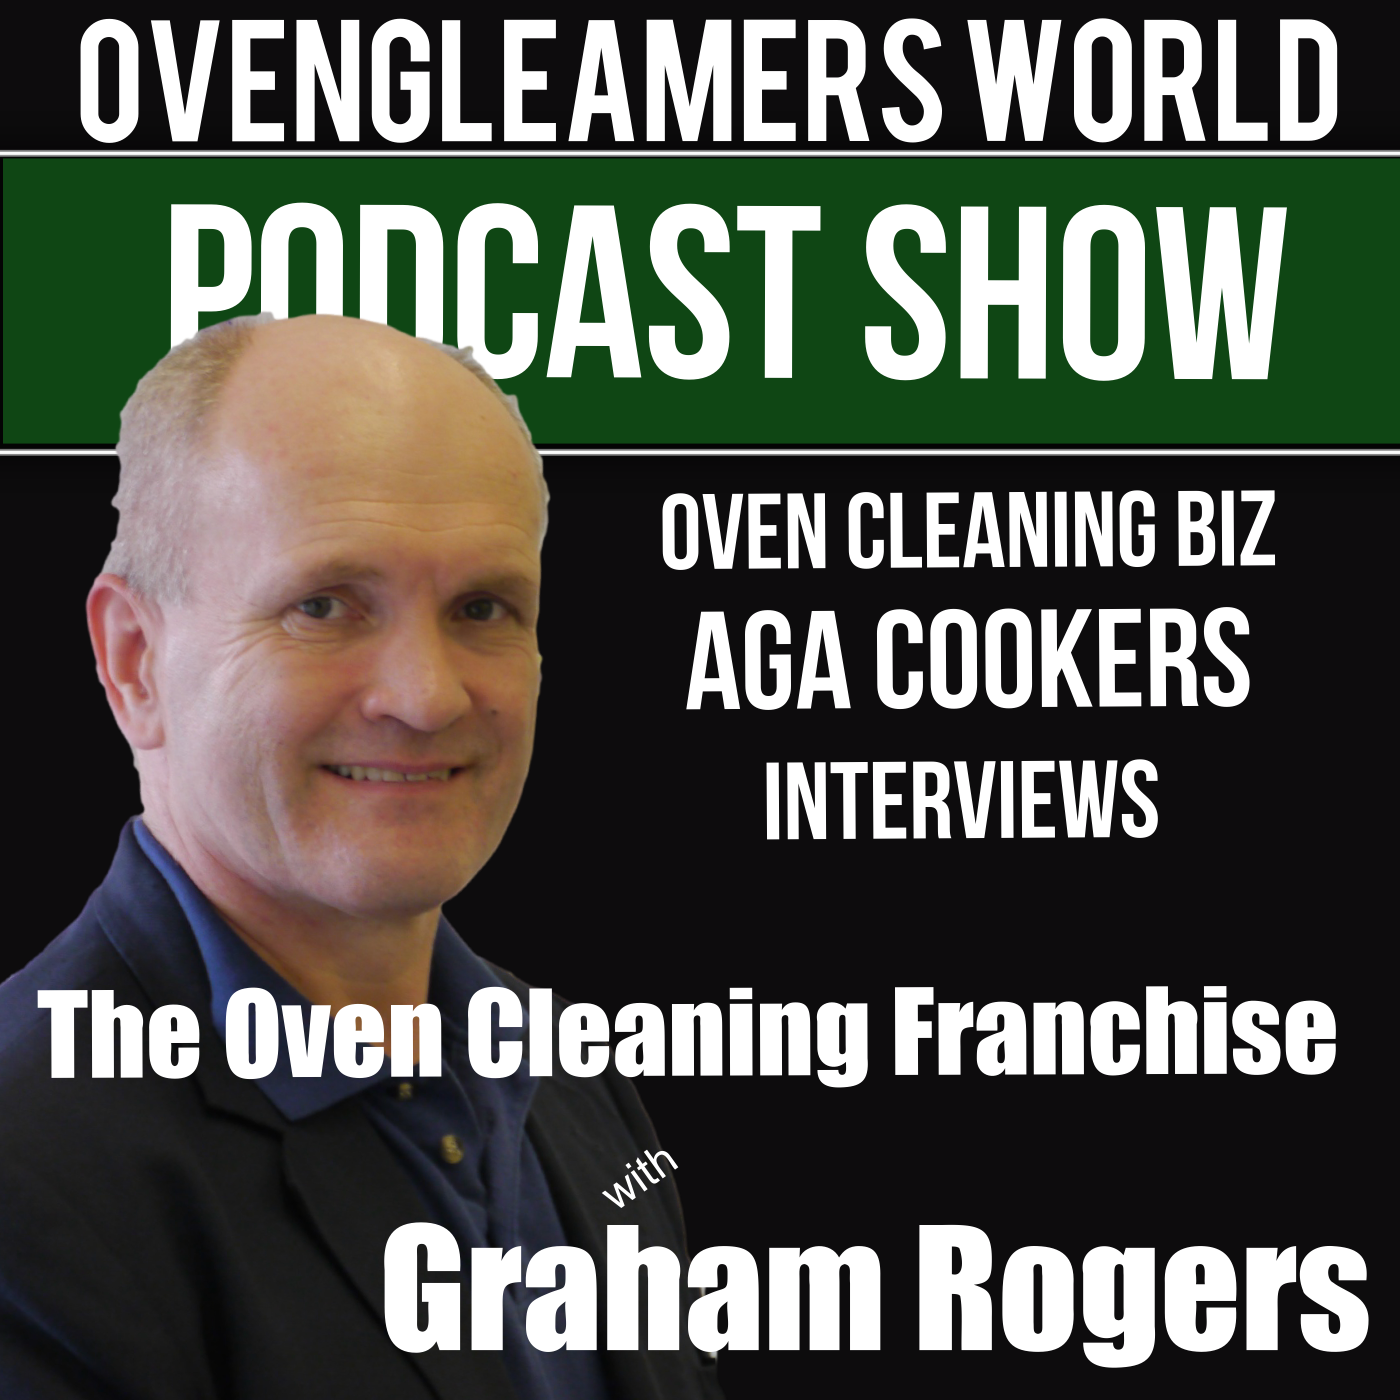 OvenGleamers World: Franchise, AGA Cookers, Oven Cleaning show image